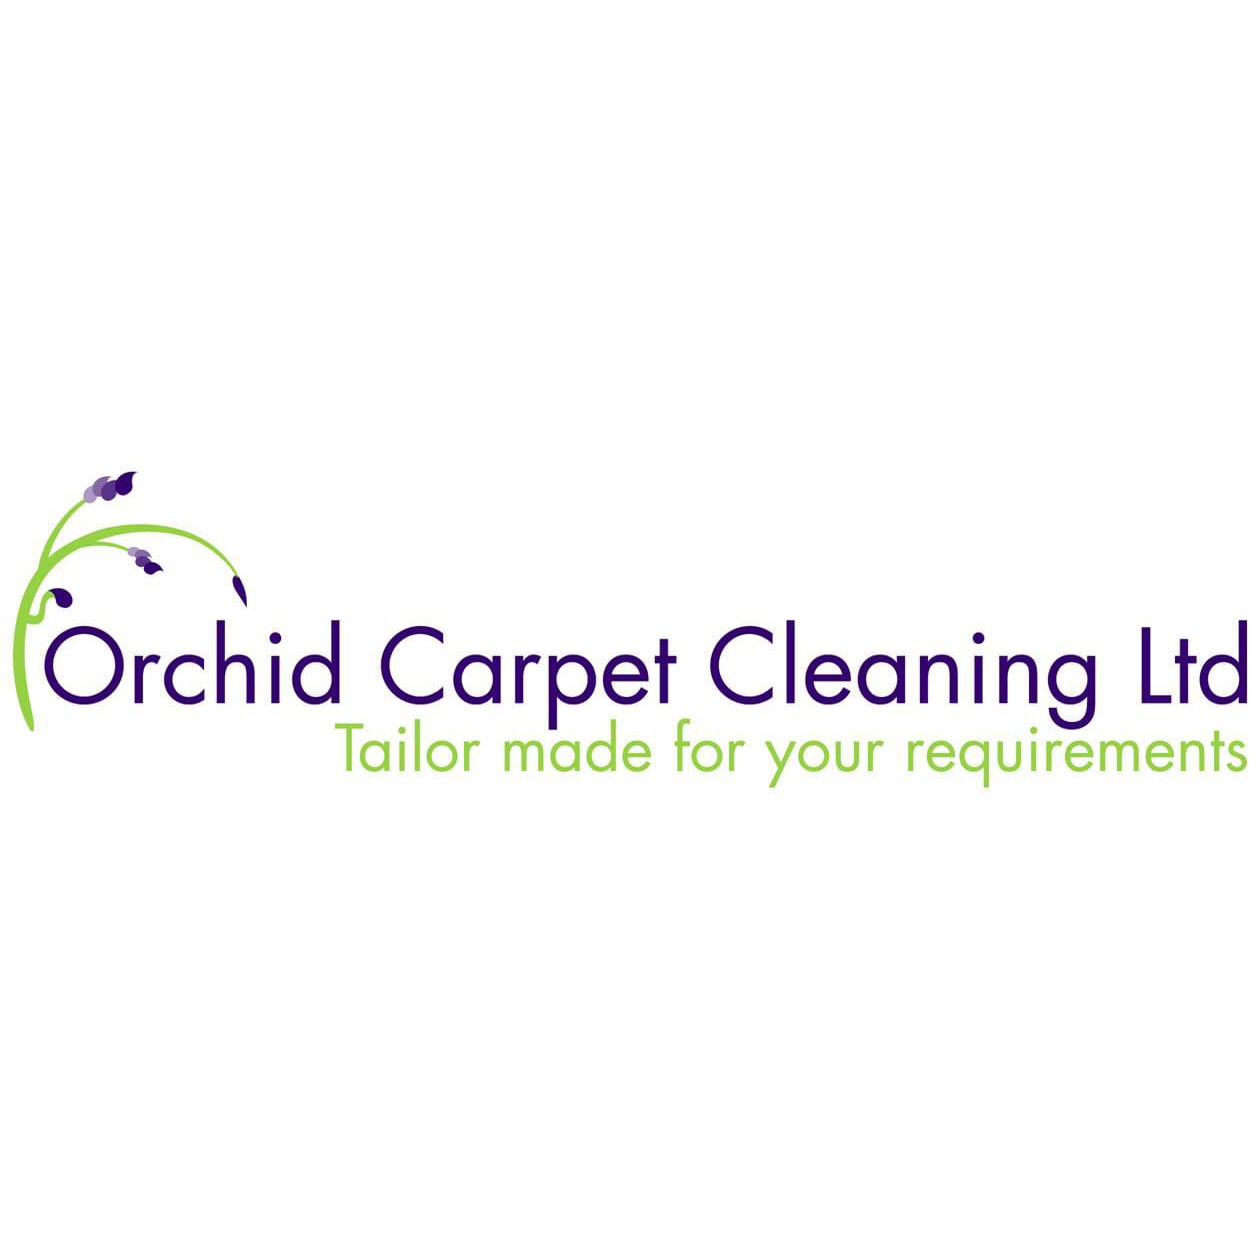 Orchid Carpet Cleaning Ltd - Templecombe, Somerset BA8 0JZ - 01963 371284 | ShowMeLocal.com